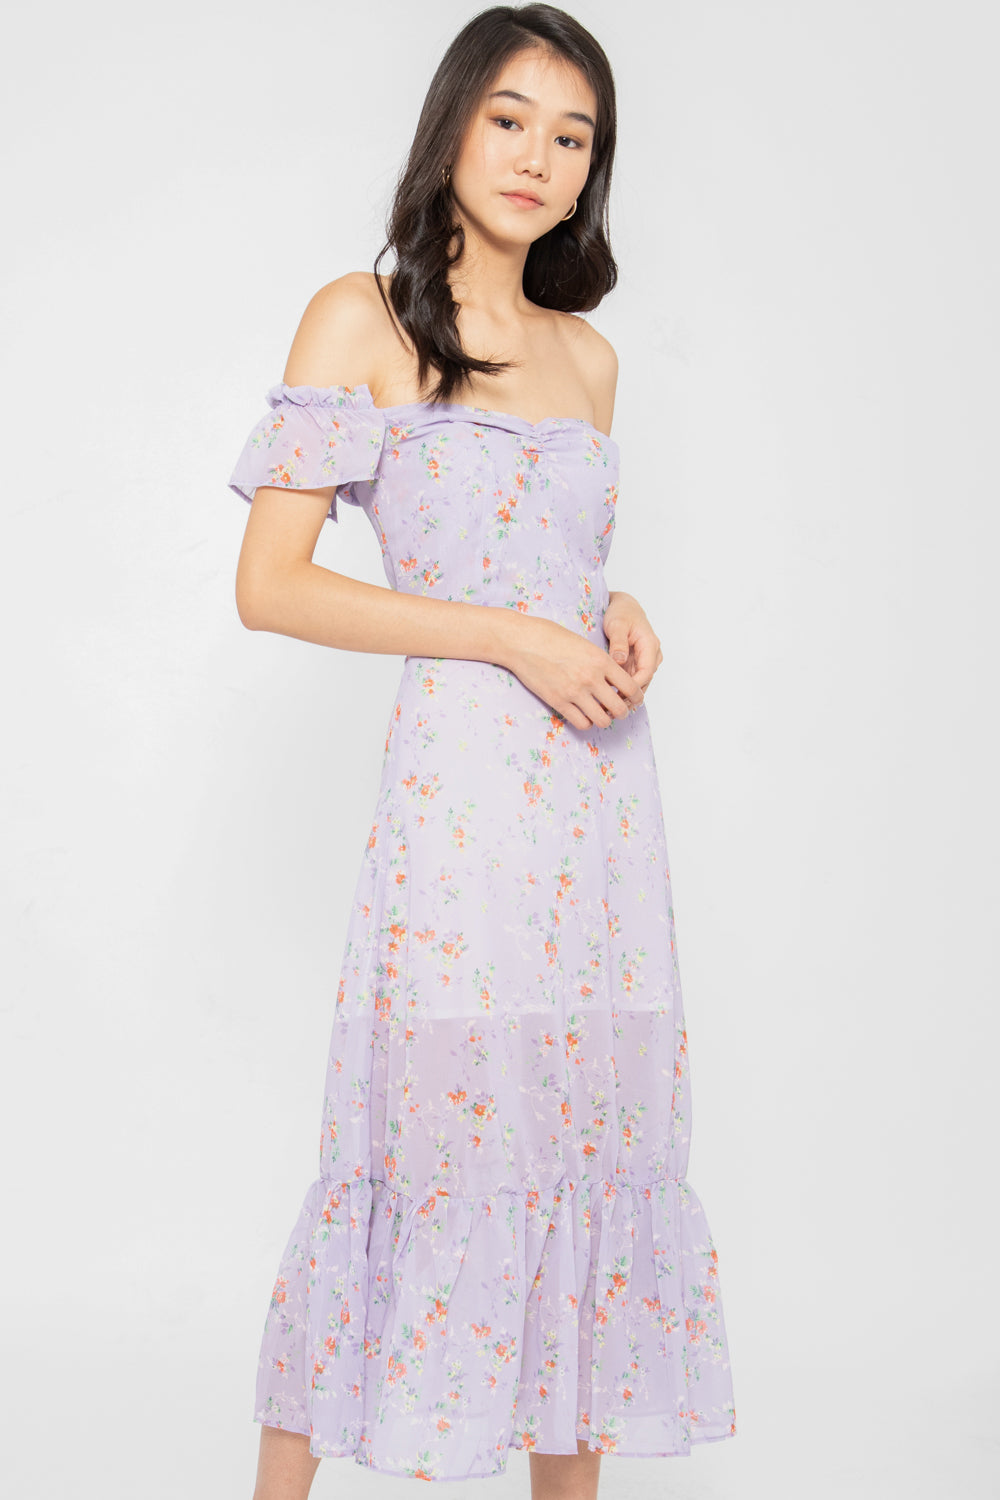 Valentina Floral Off-Shoulder Dress in Lilac - Three One Duo